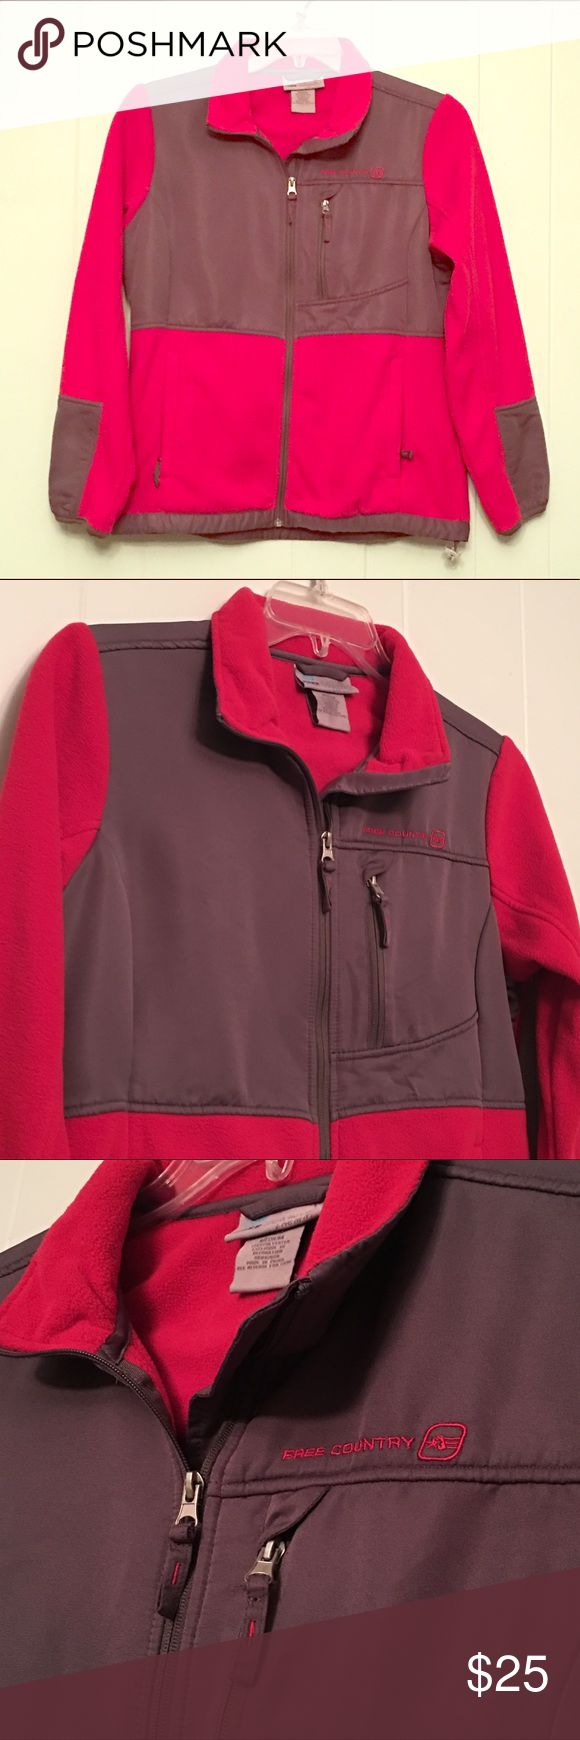 Free Country Fleece Free Country Fleece, Nearly New Condition. 100% Polyester. Free Country Jackets & Coats